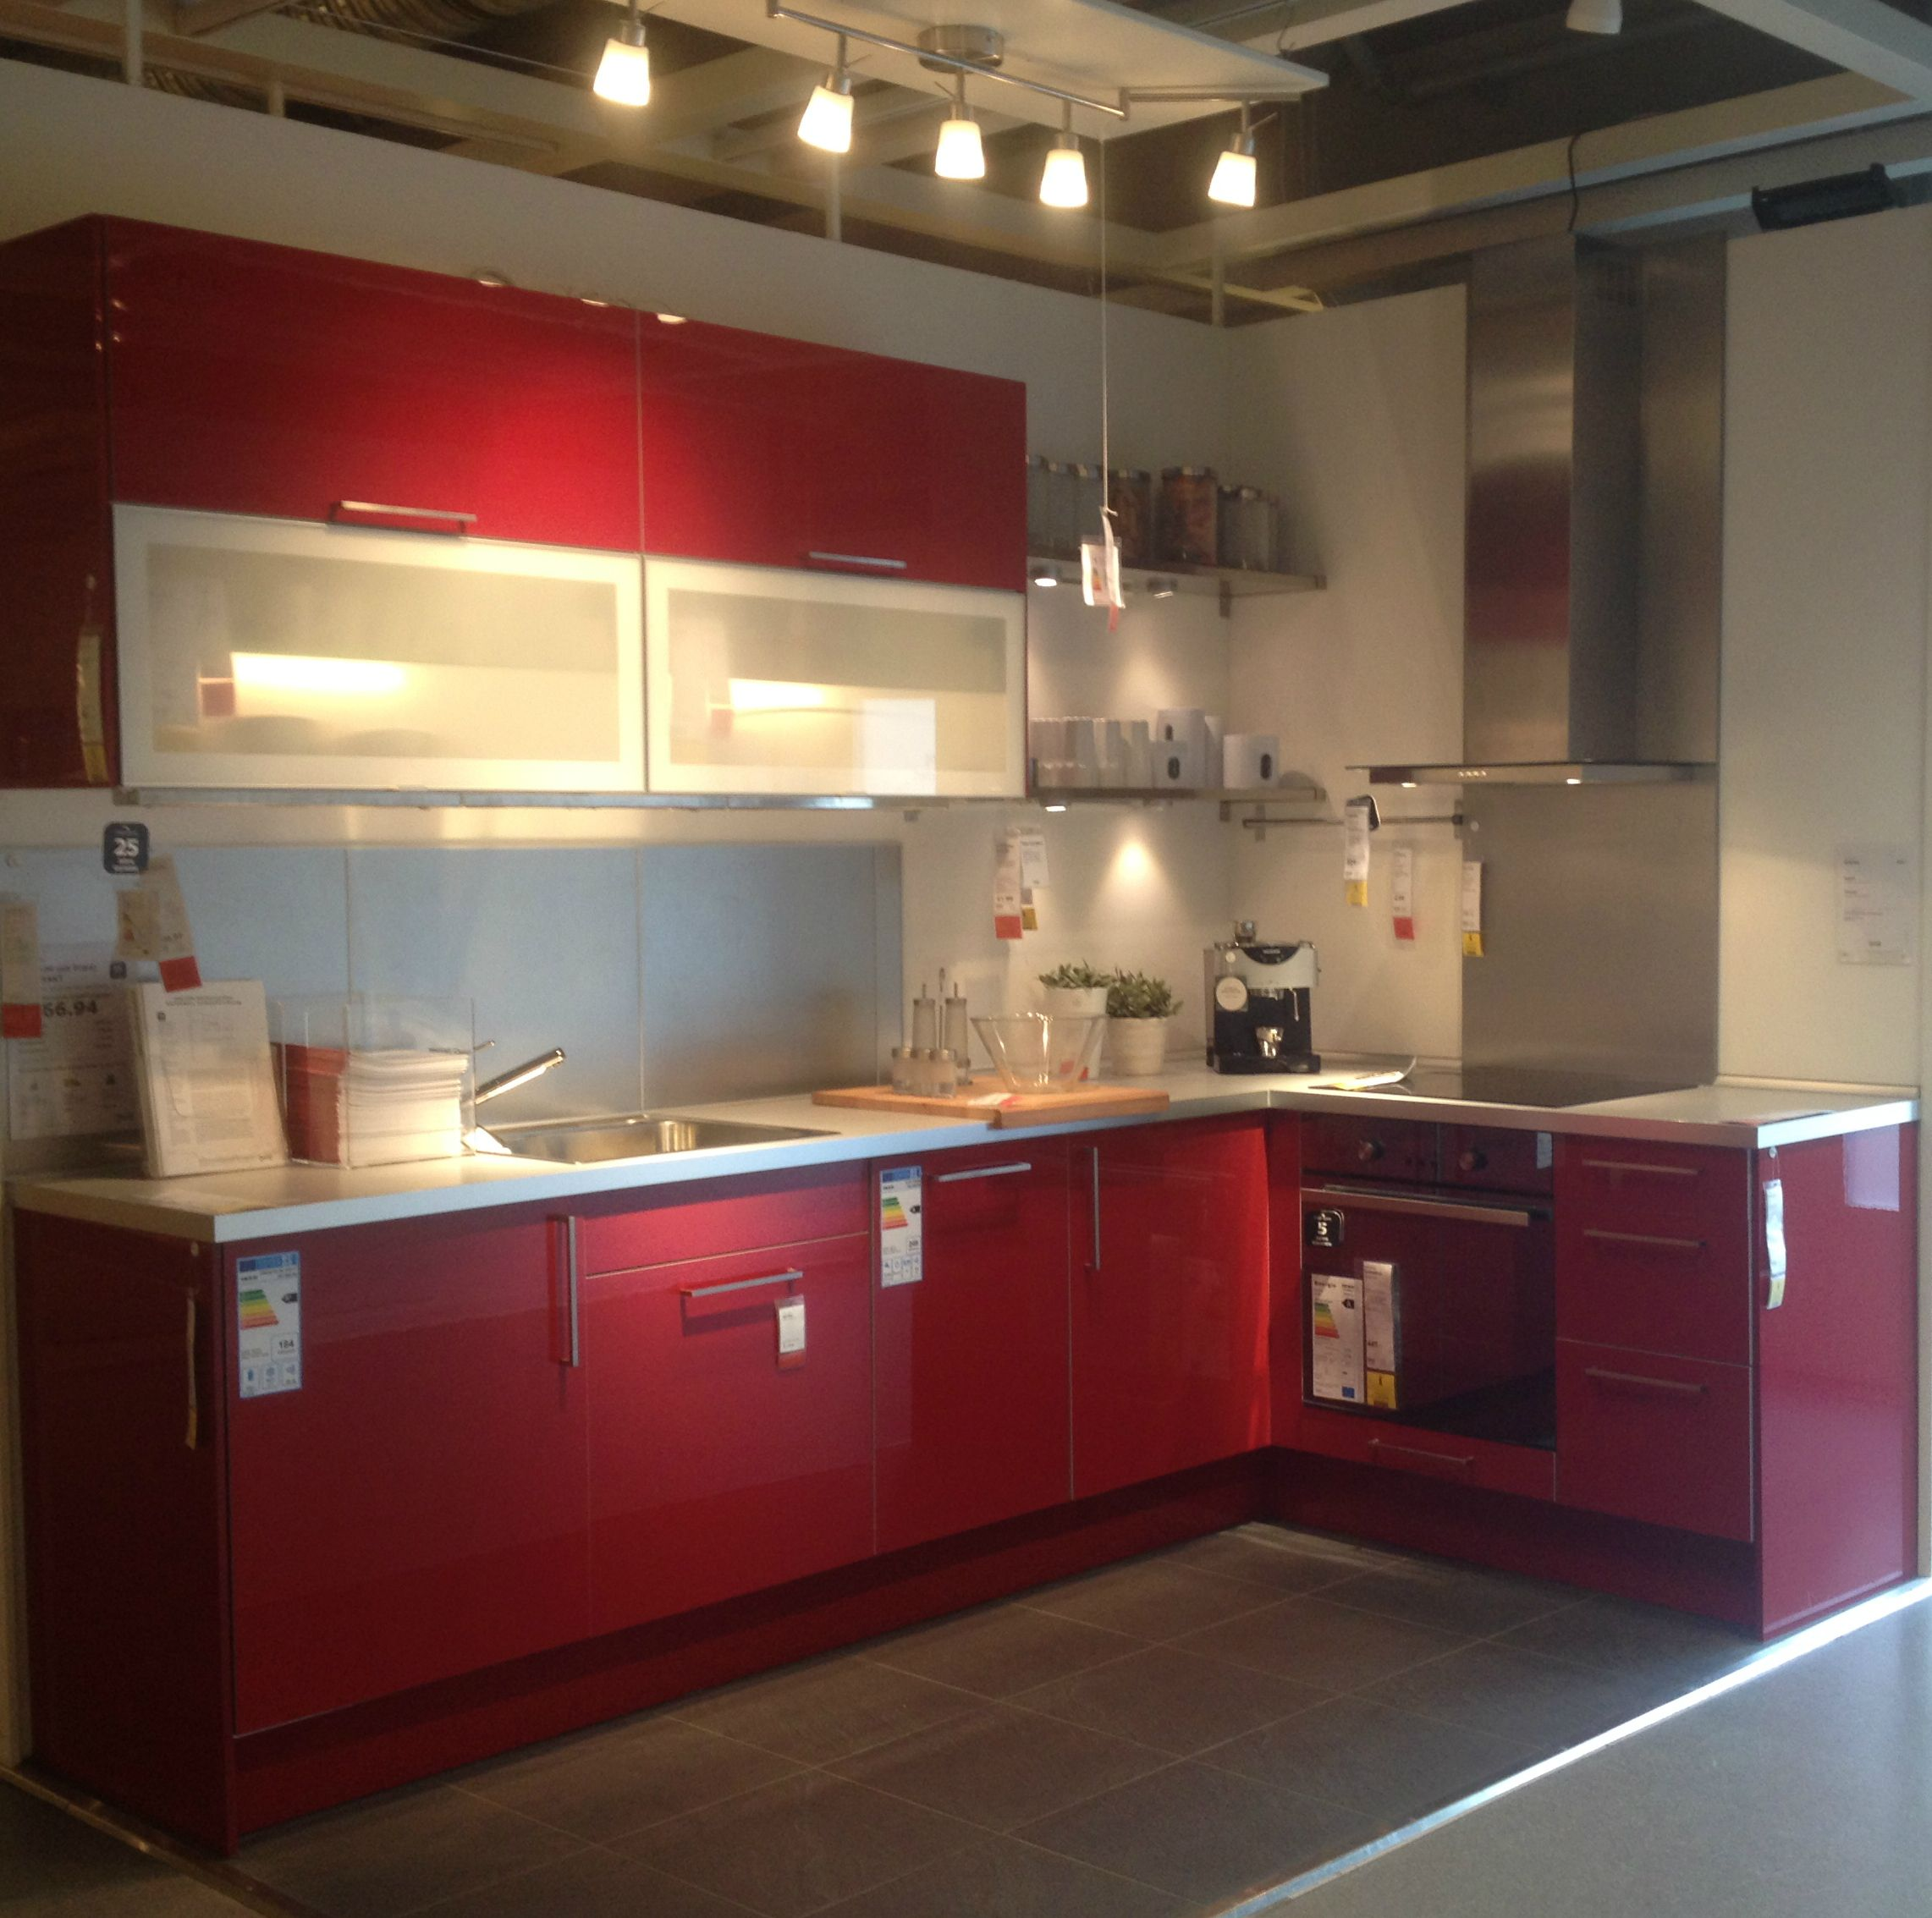 Küche In Rot Rote Küche In L Form Kuchnia Czerwona Red Kitchen